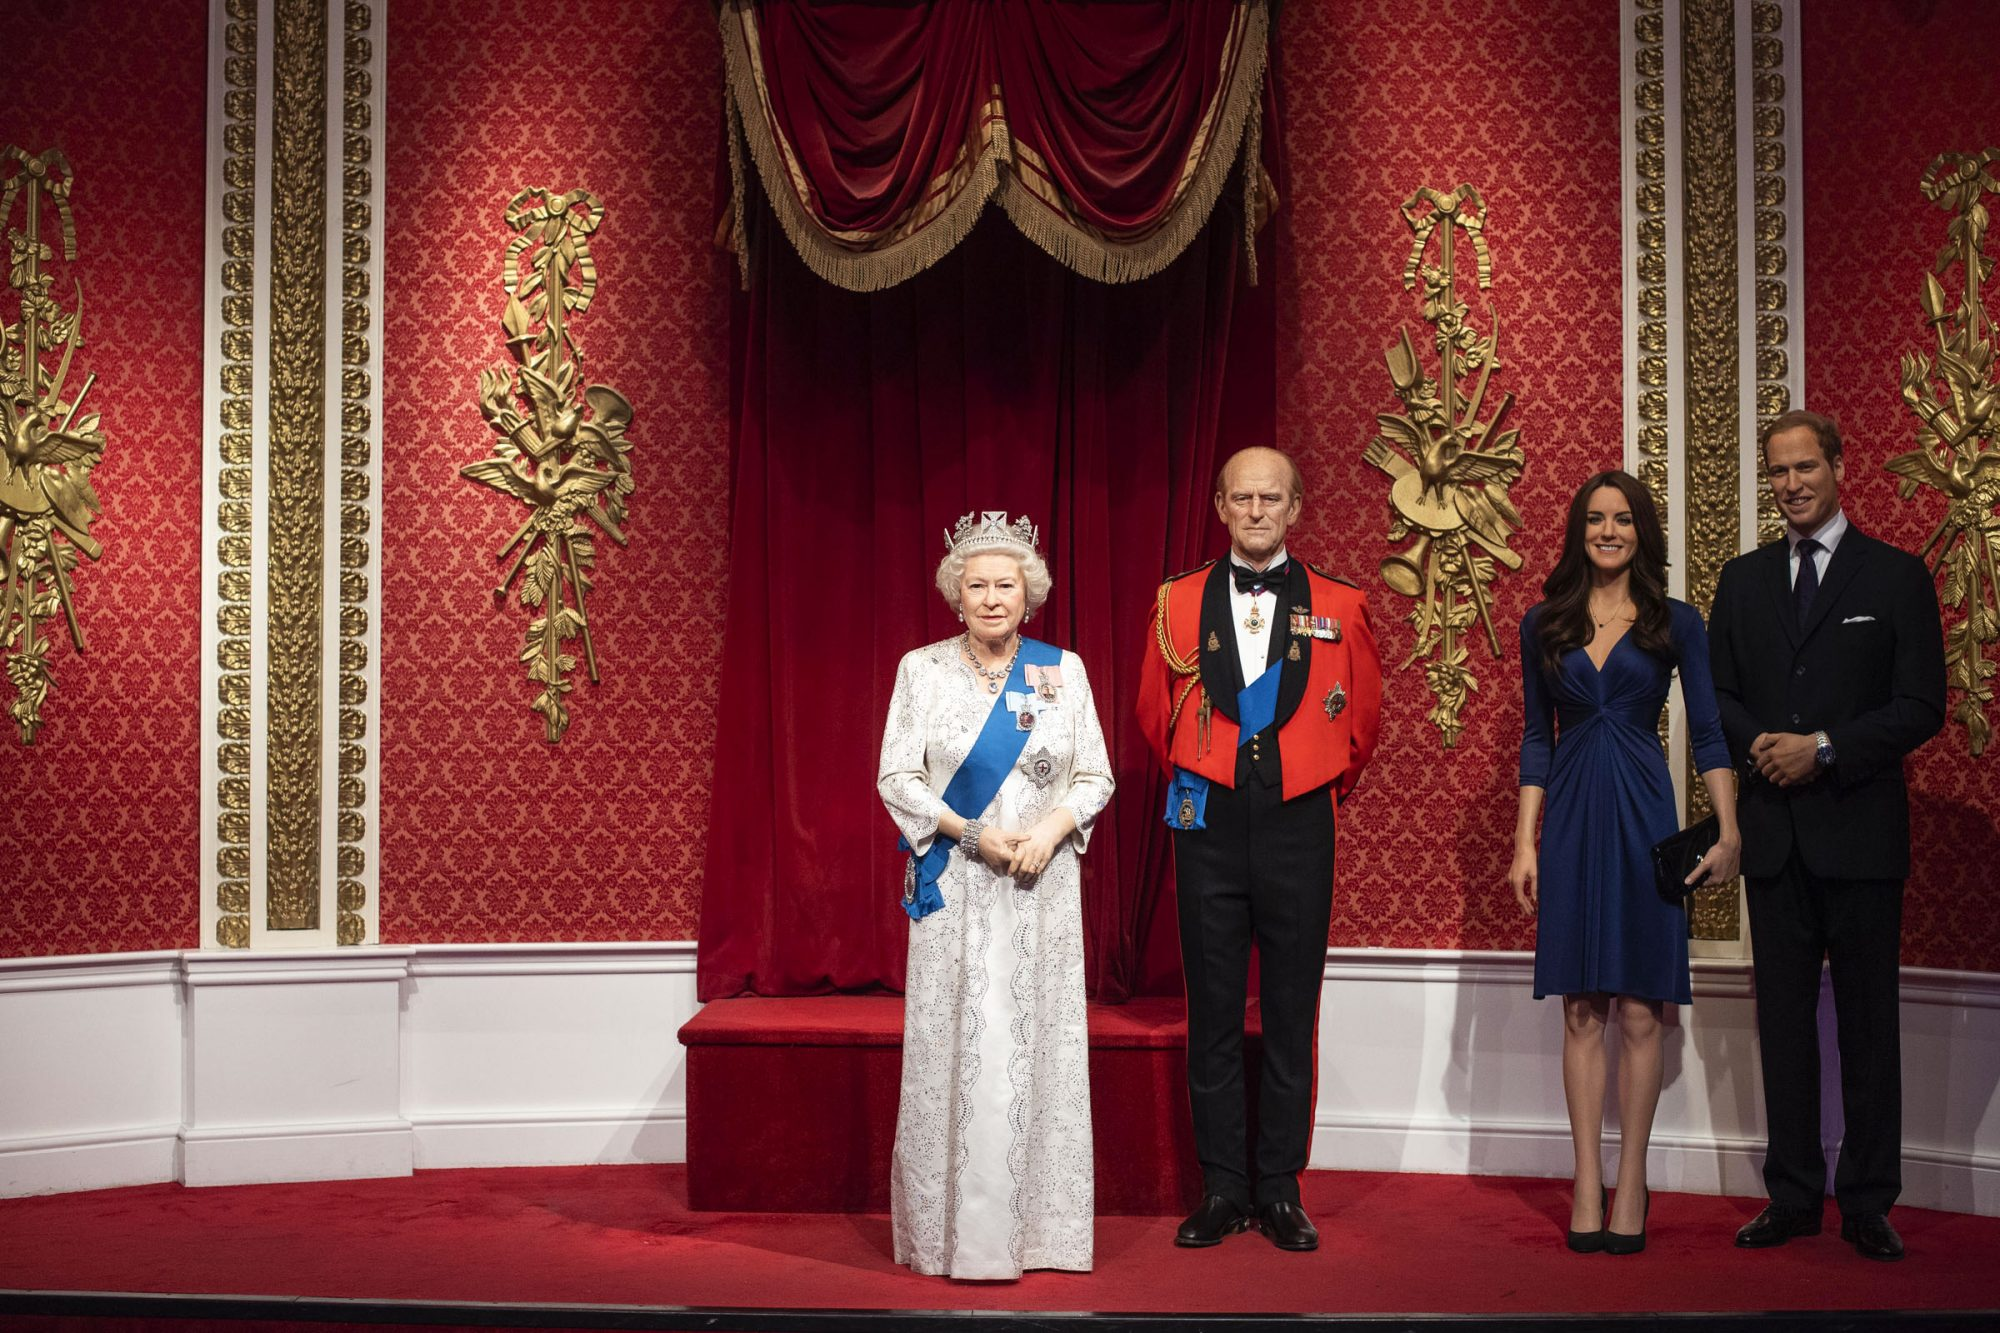 The empty space left next to the figures of Queen Elizabeth II, the Duke of Edinburgh, and the Duke and Duchess of Cambridge